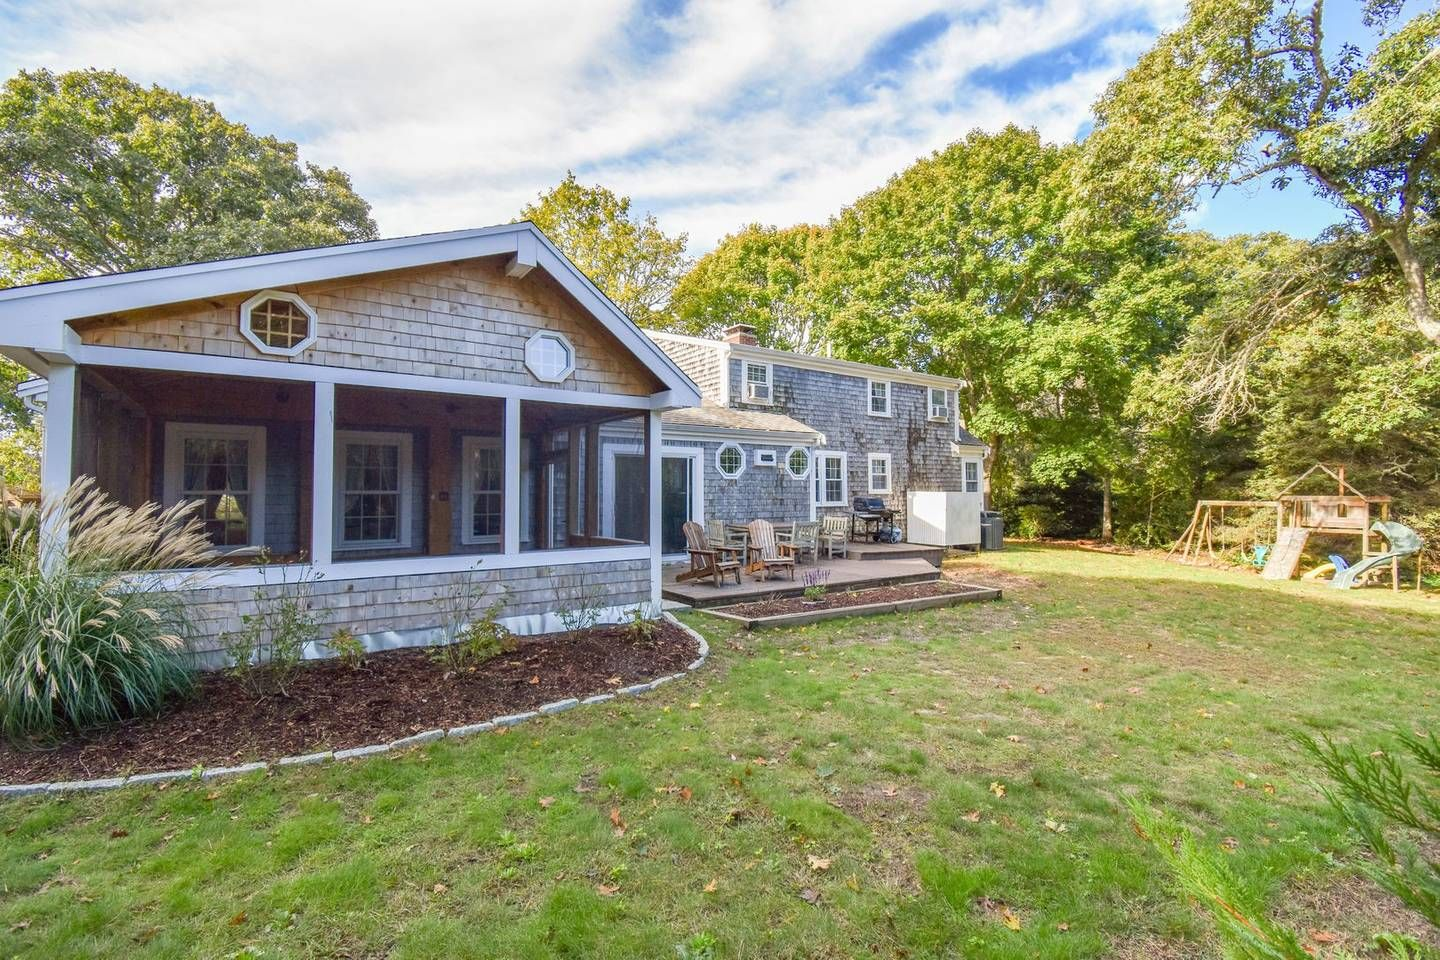 614 Walk to Oyster River, minutes to downtown & beaches